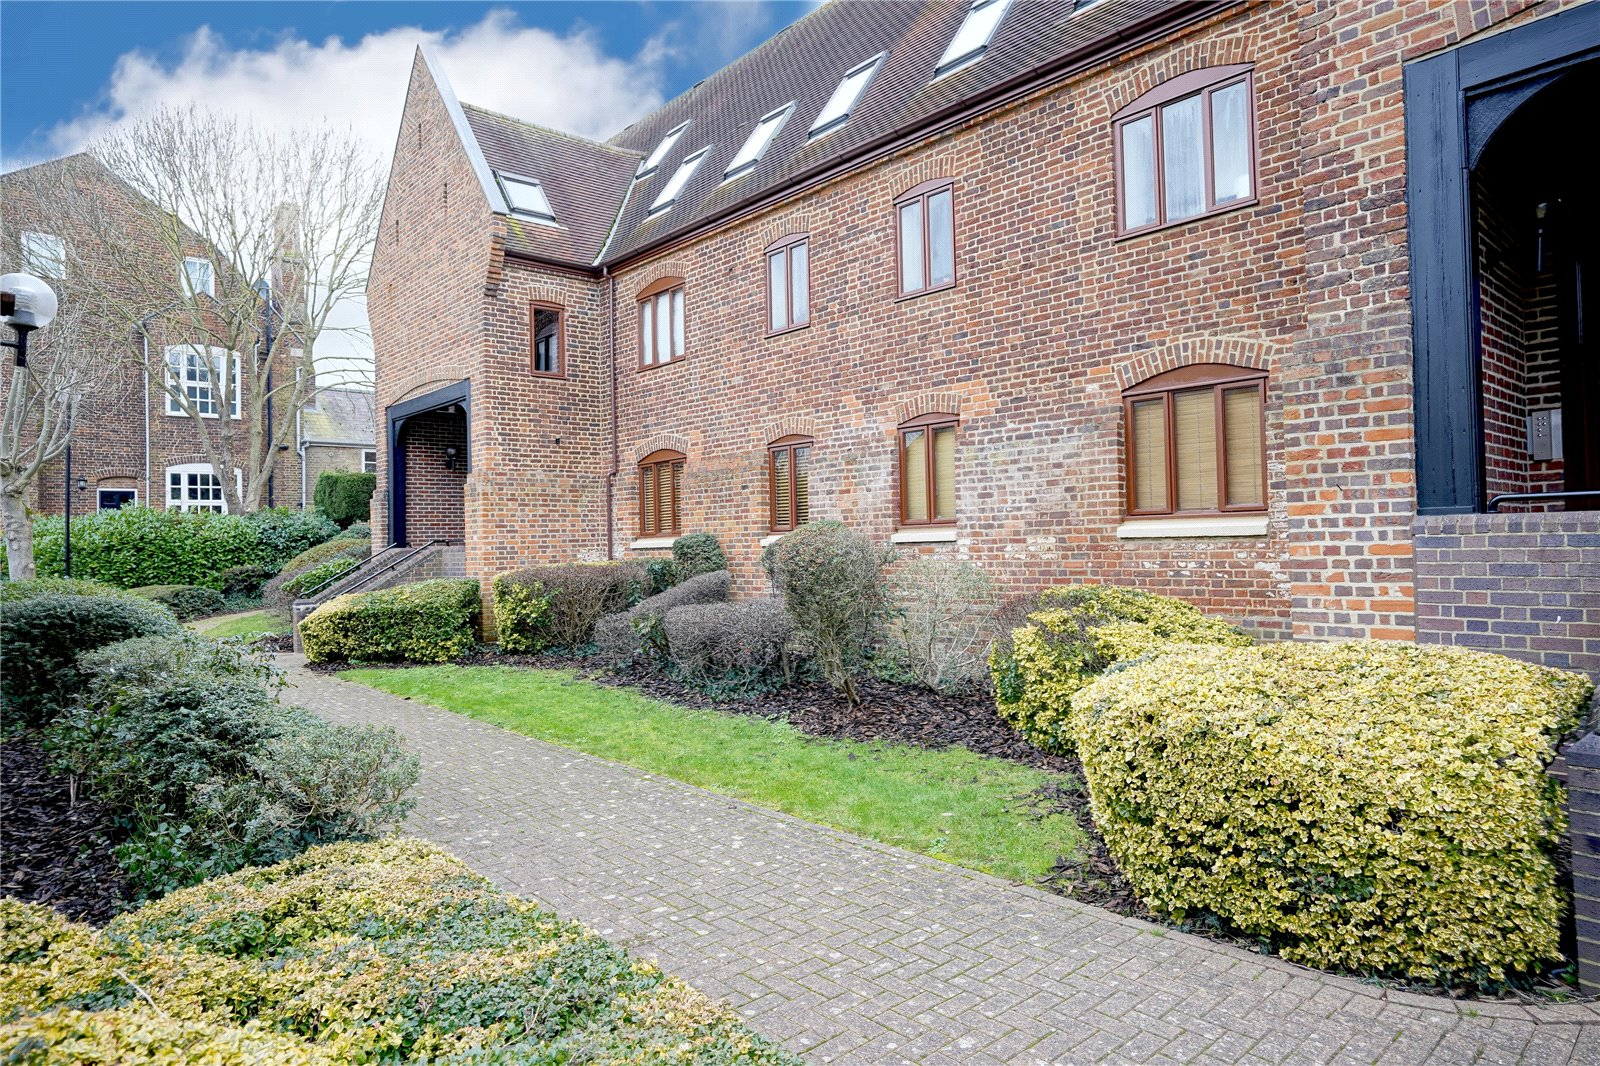 2 bed apartment for sale in Little Paxton, Rampley Lane, PE19 6PQ - Property Image 1